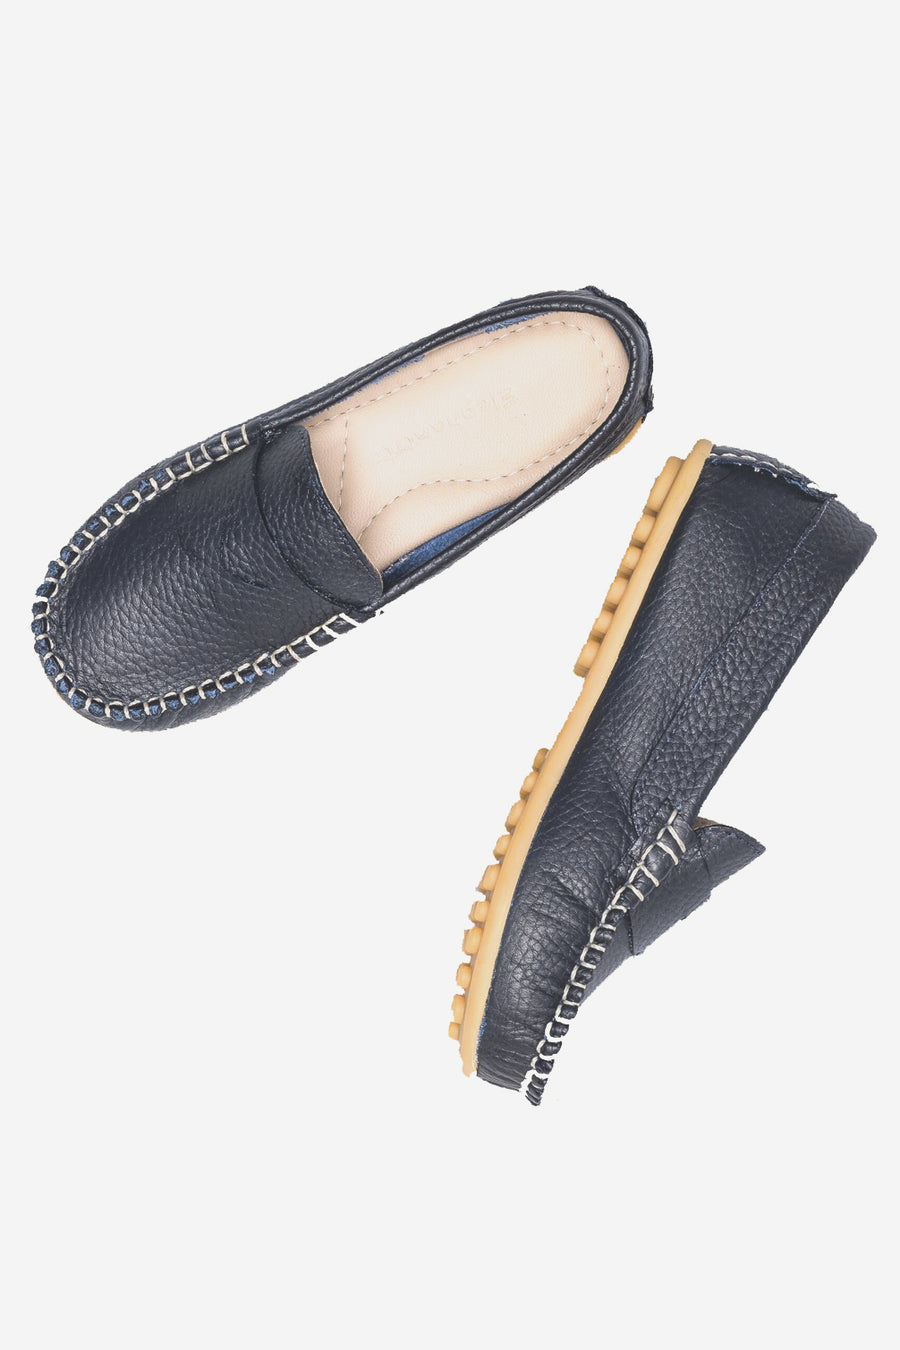 Elephantito Alex Drivers Boys Shoes - Navy